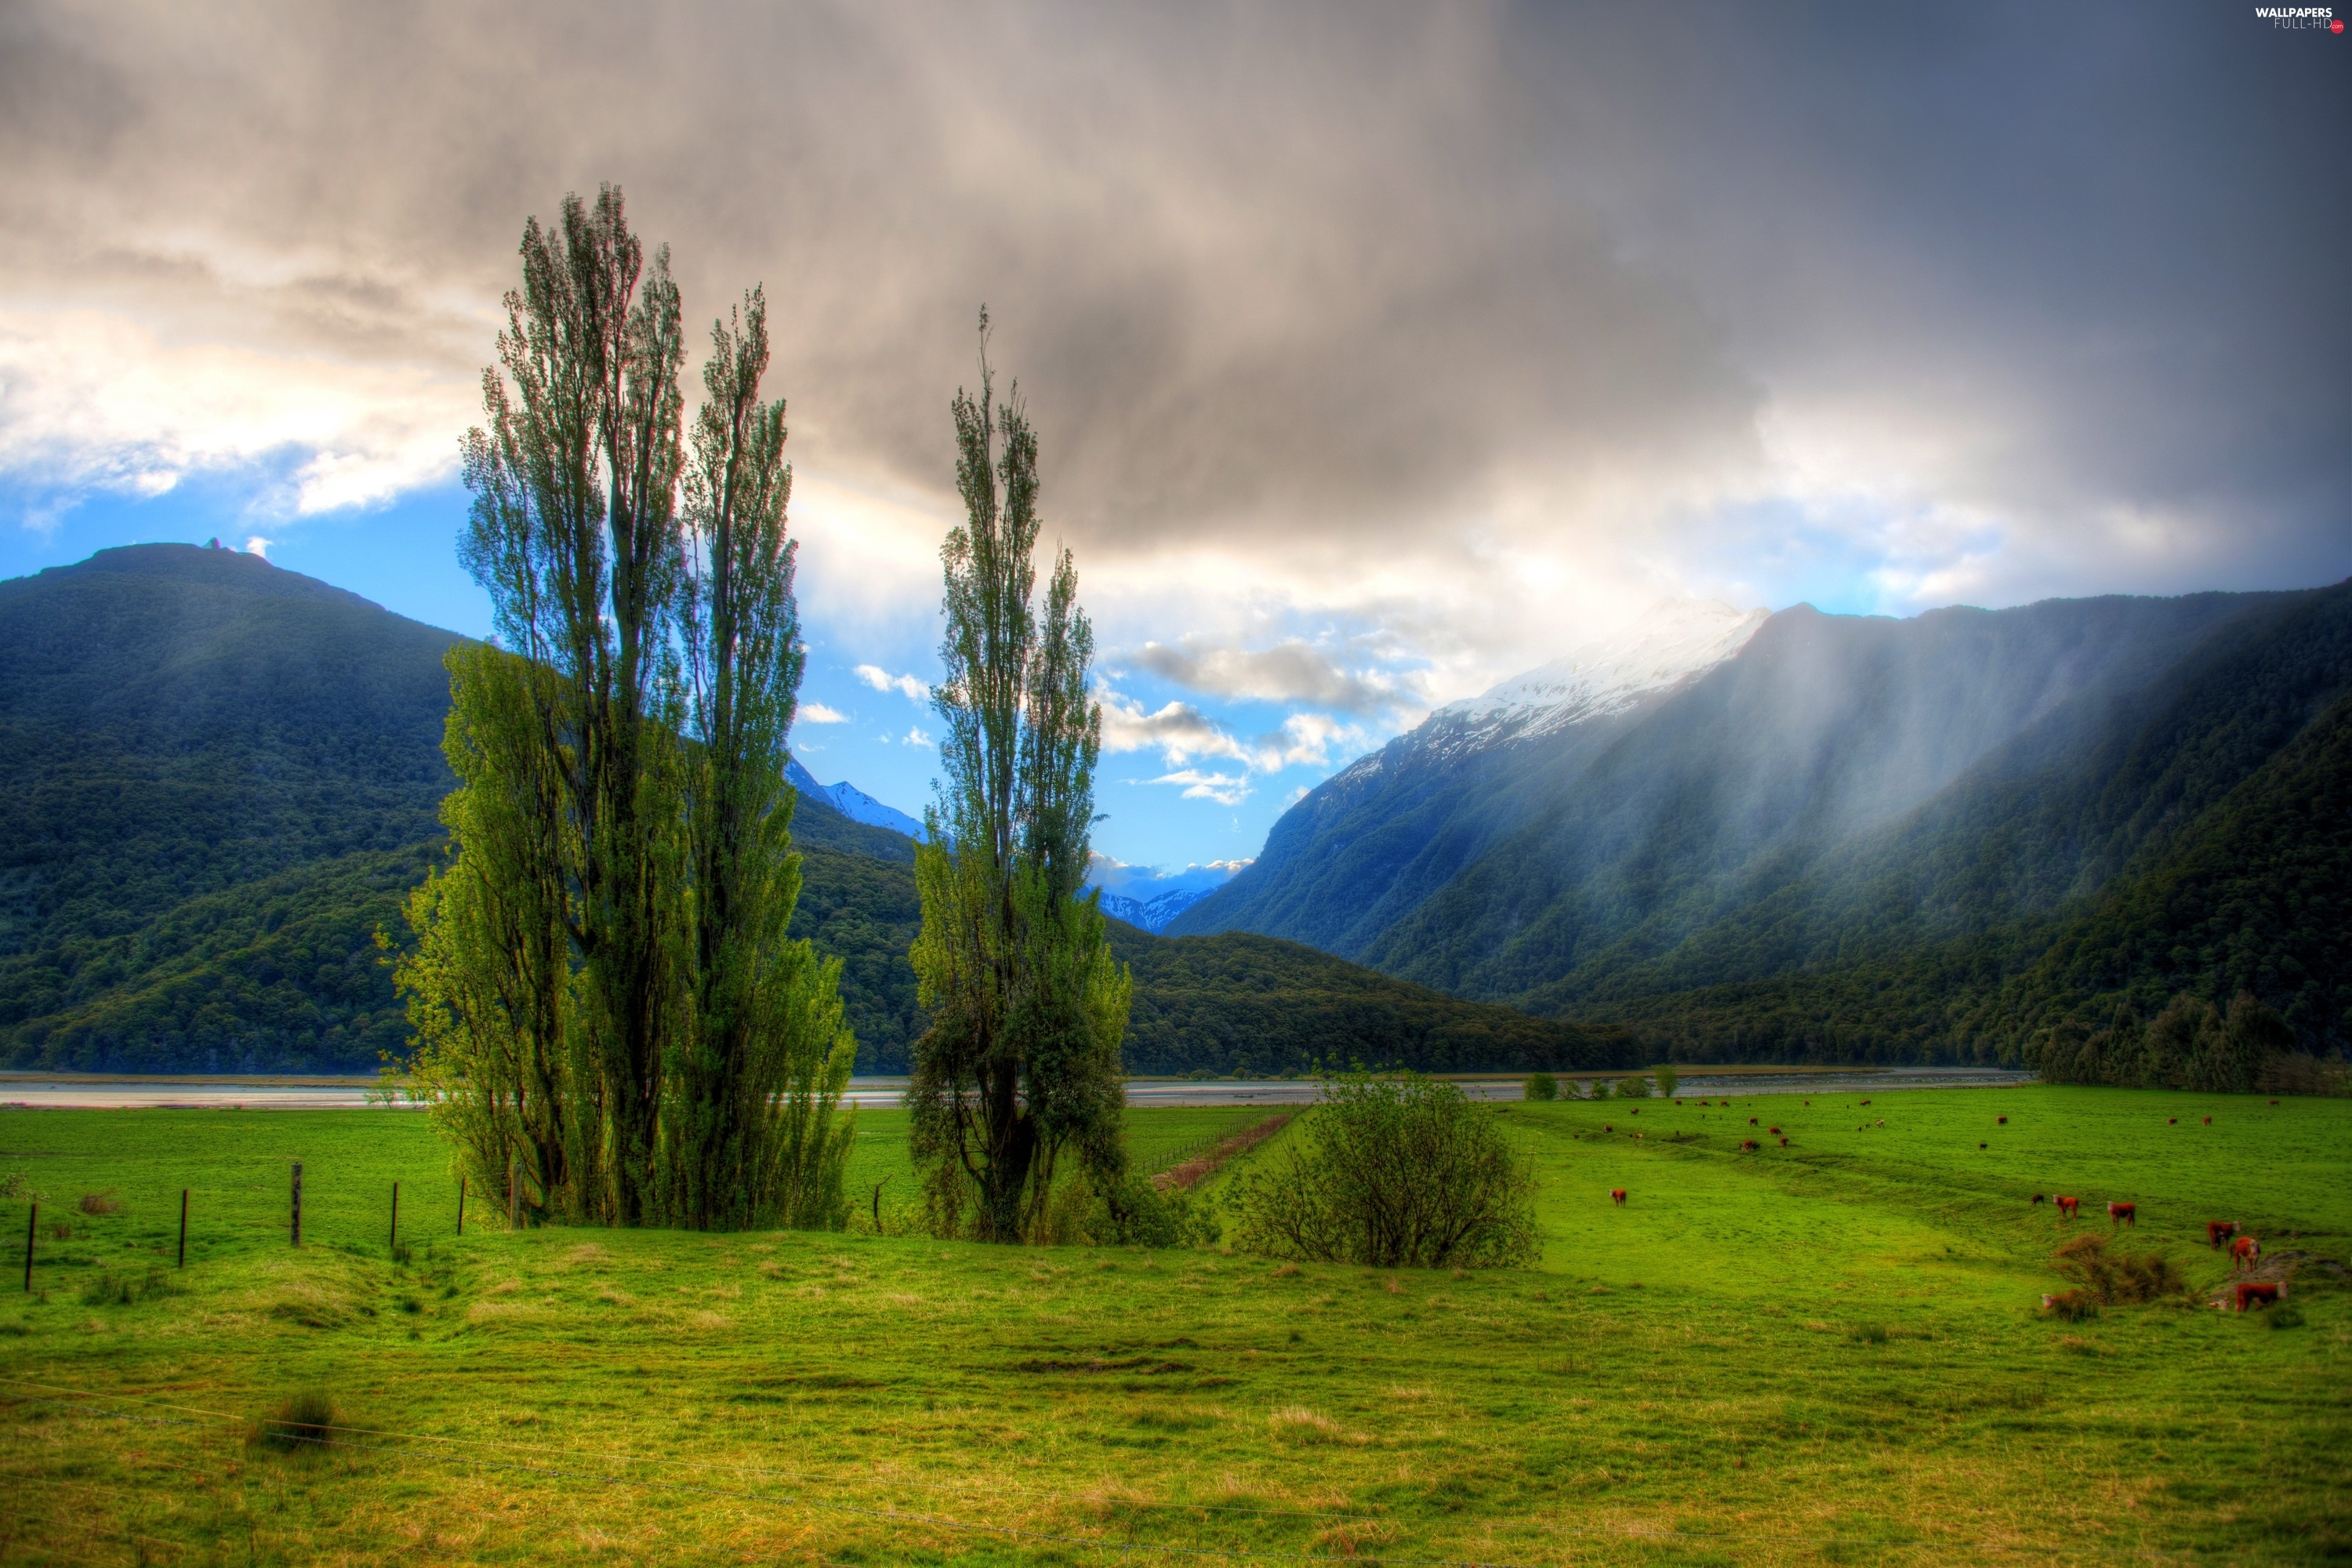 Fog, River, Mountains, clouds, woods